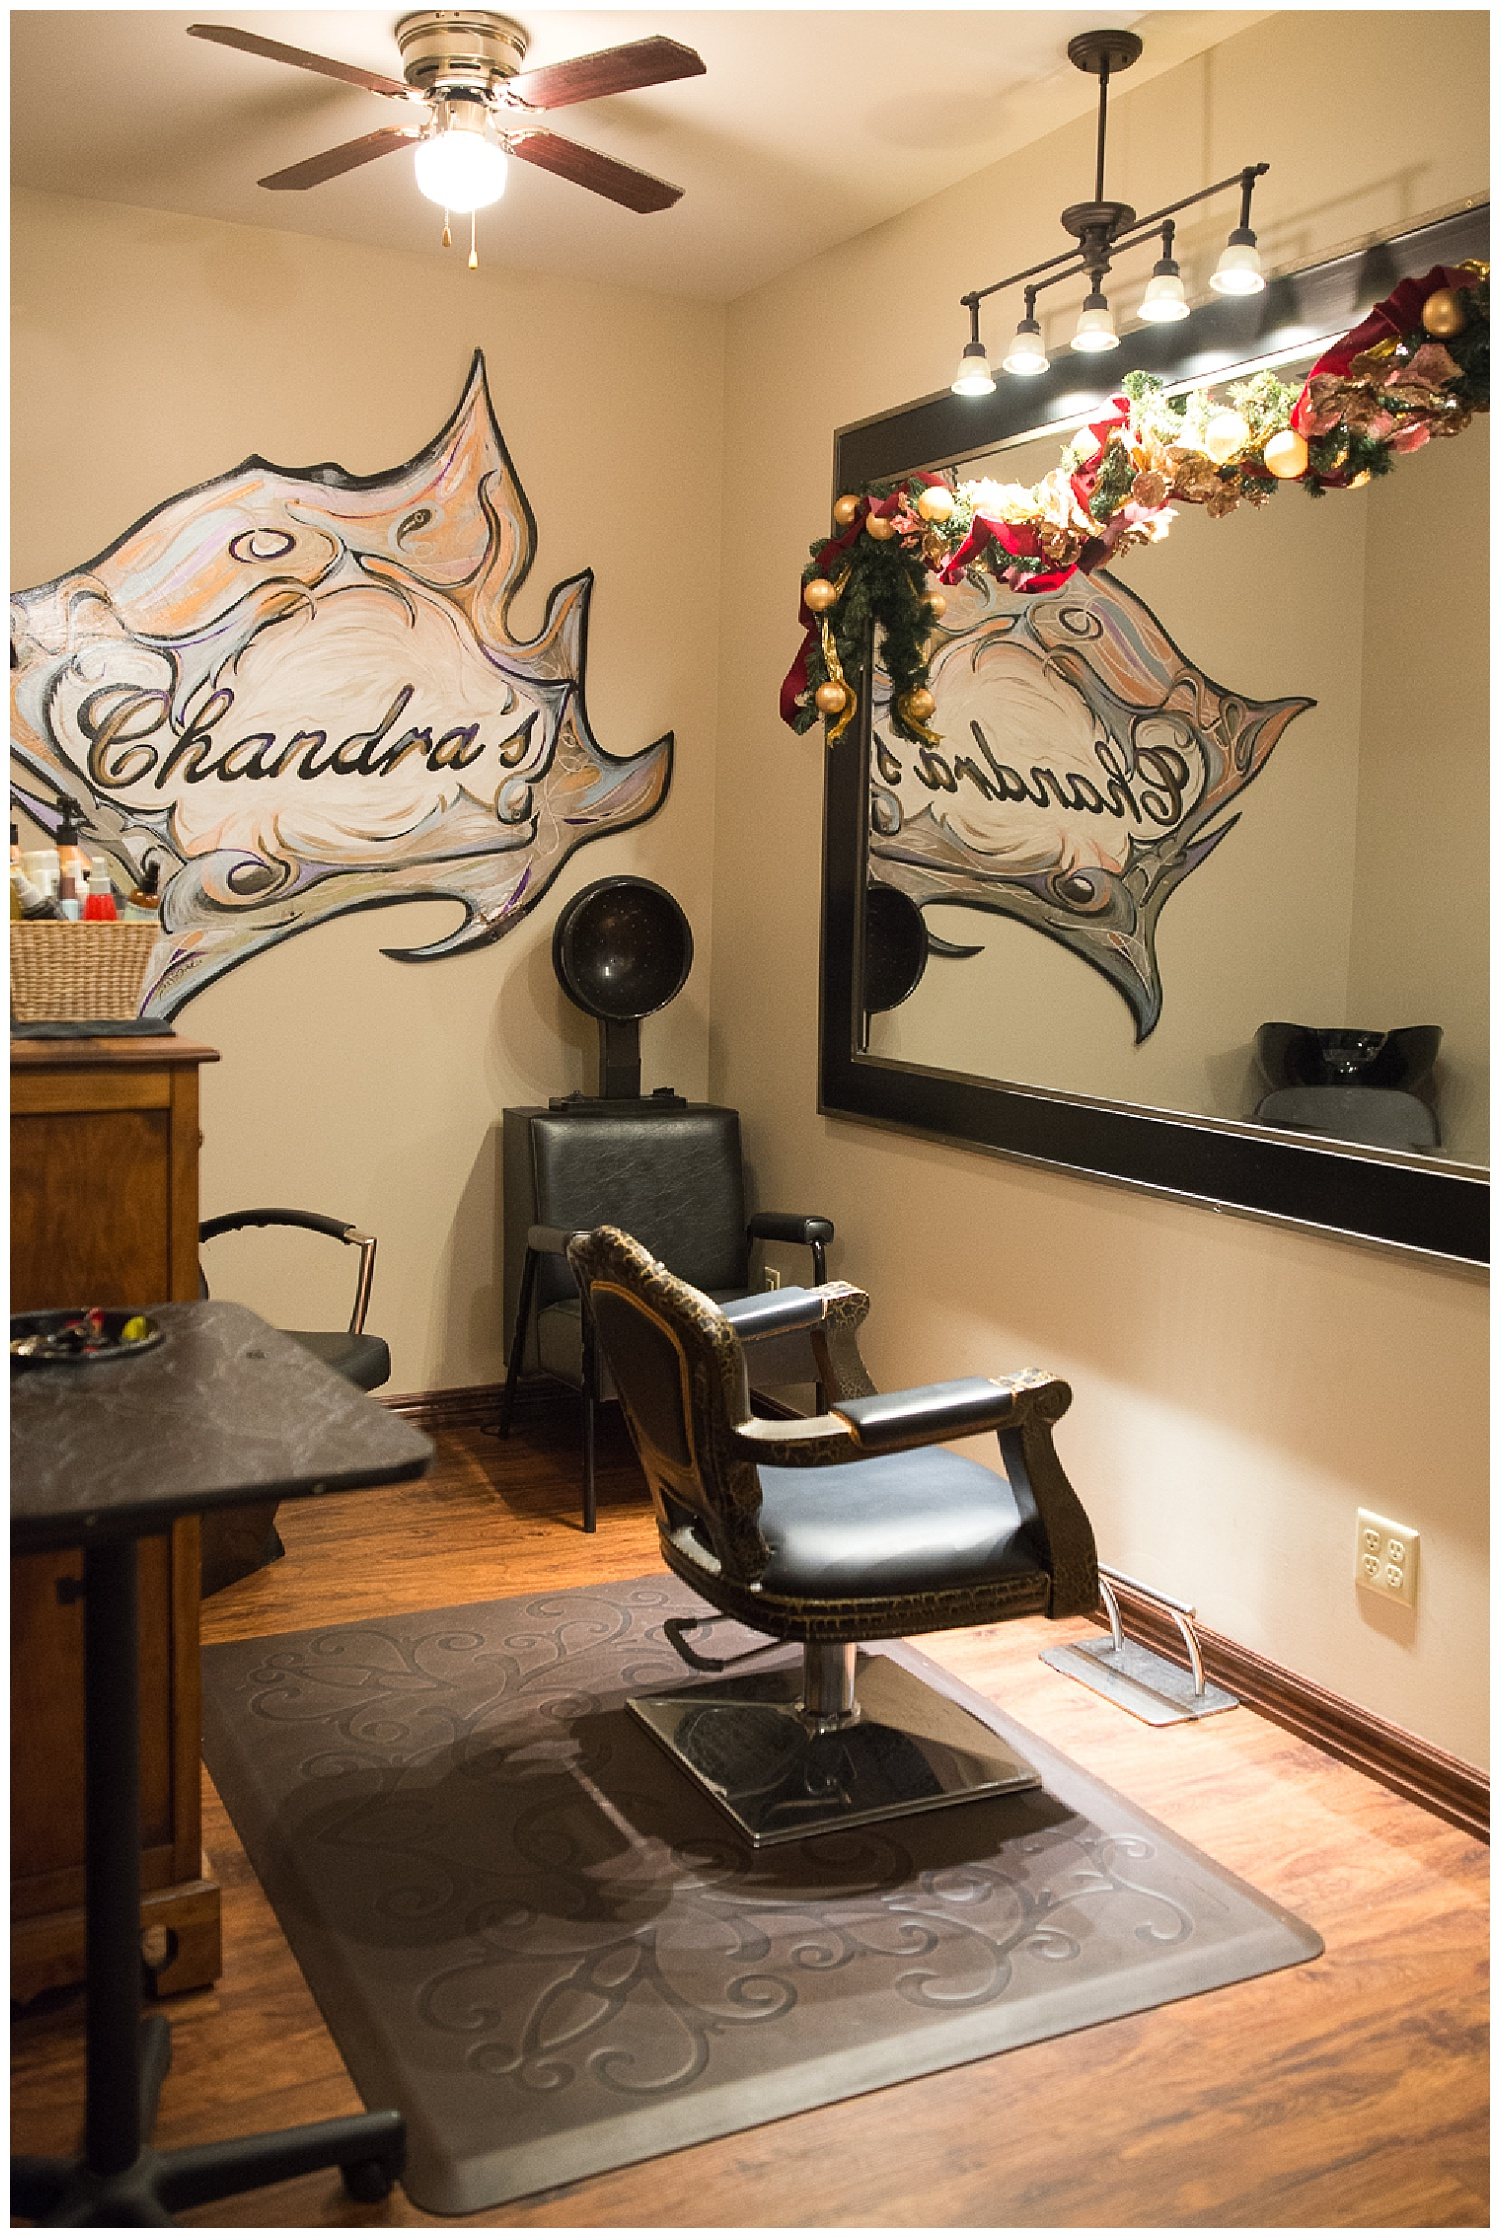 Part-time salon now, but slated to become storage for her Christmas décor later on in life.